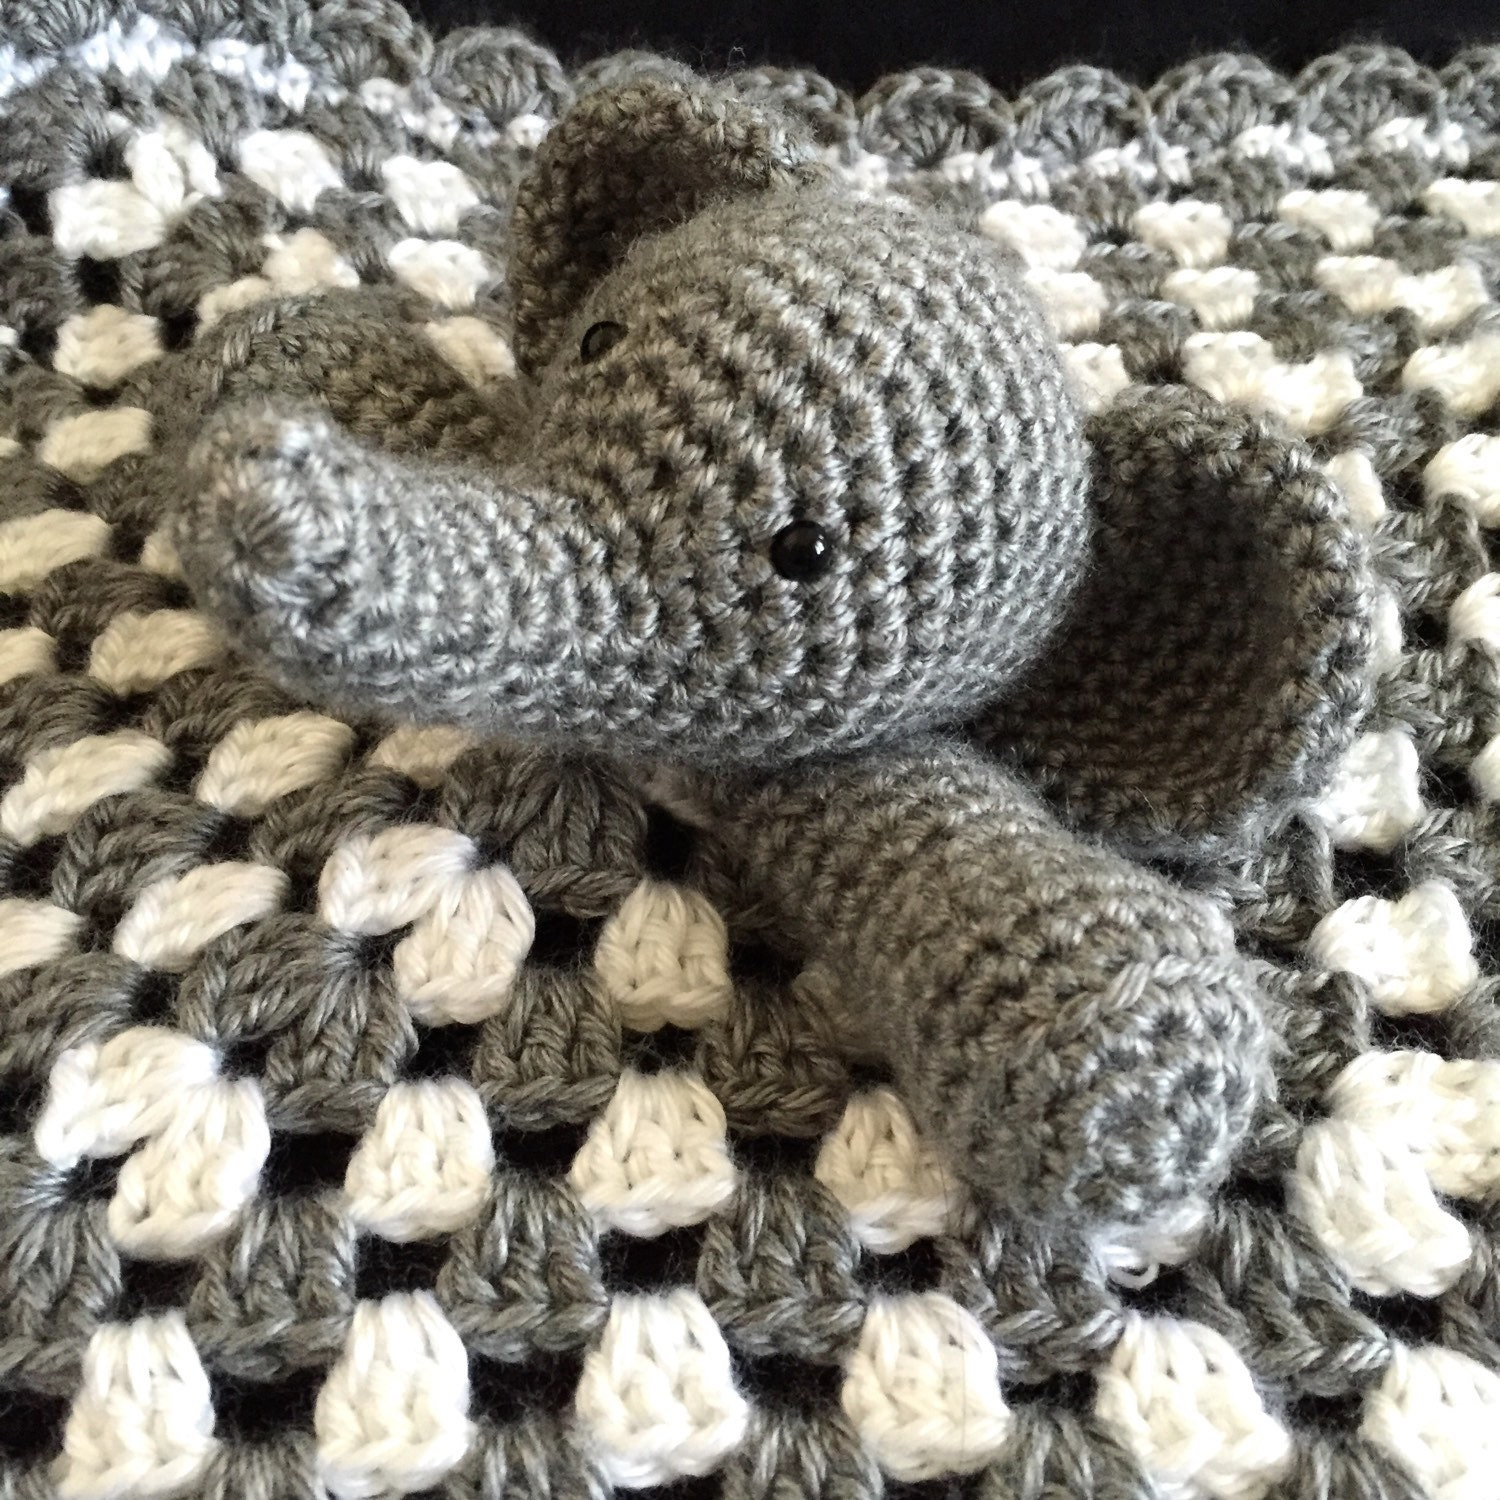 Crochet Elephant Blanket : Elephant lovey security blanket crochet baby blanket